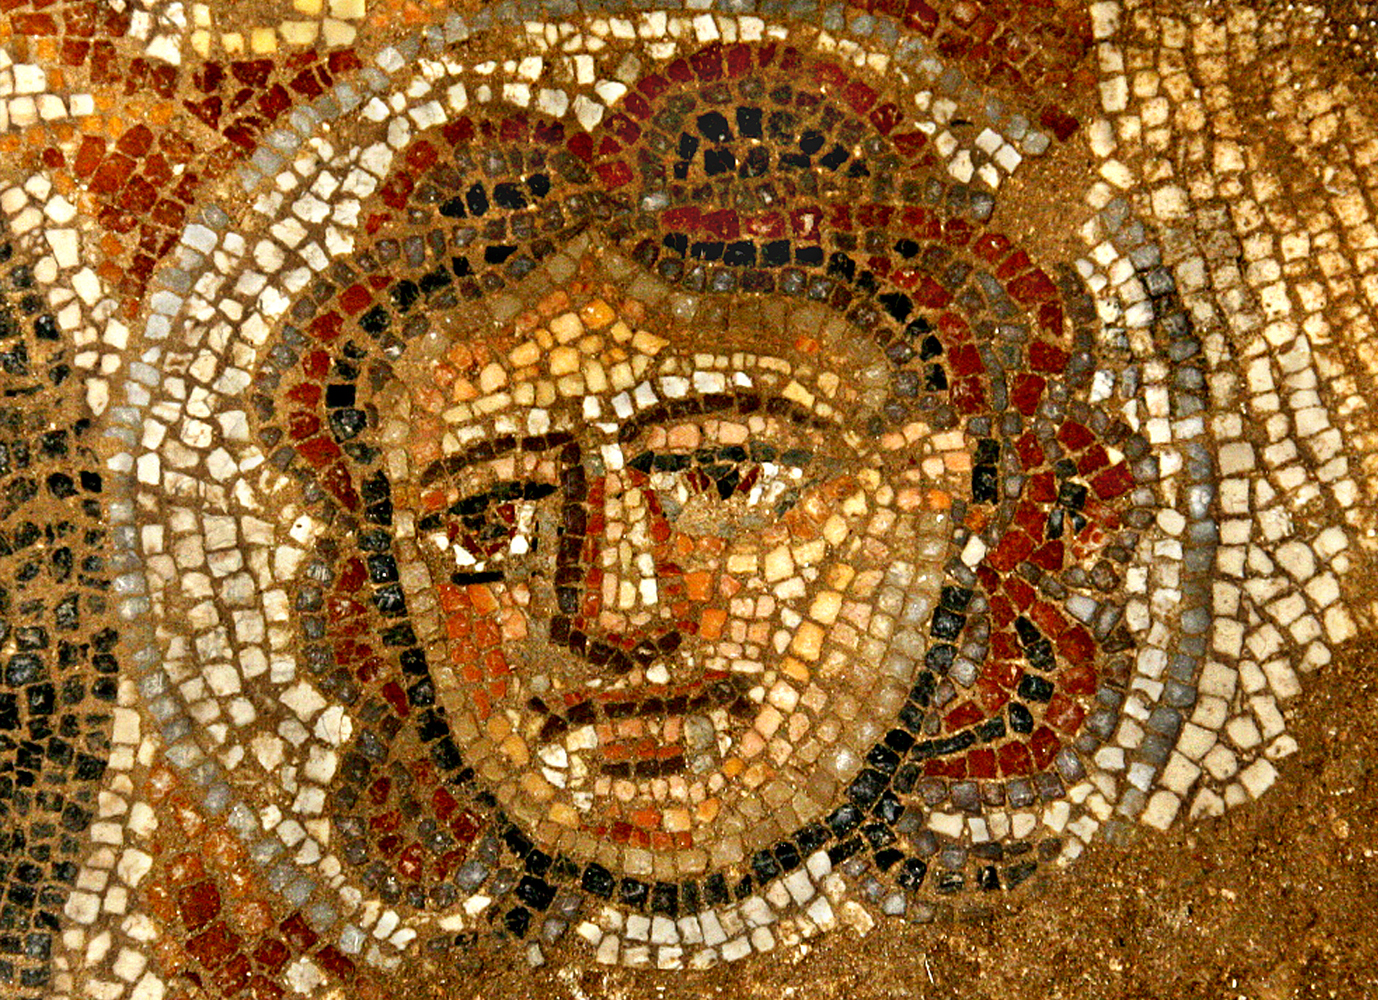 Mosaic depiction of a female face in the Huqoq synagogue